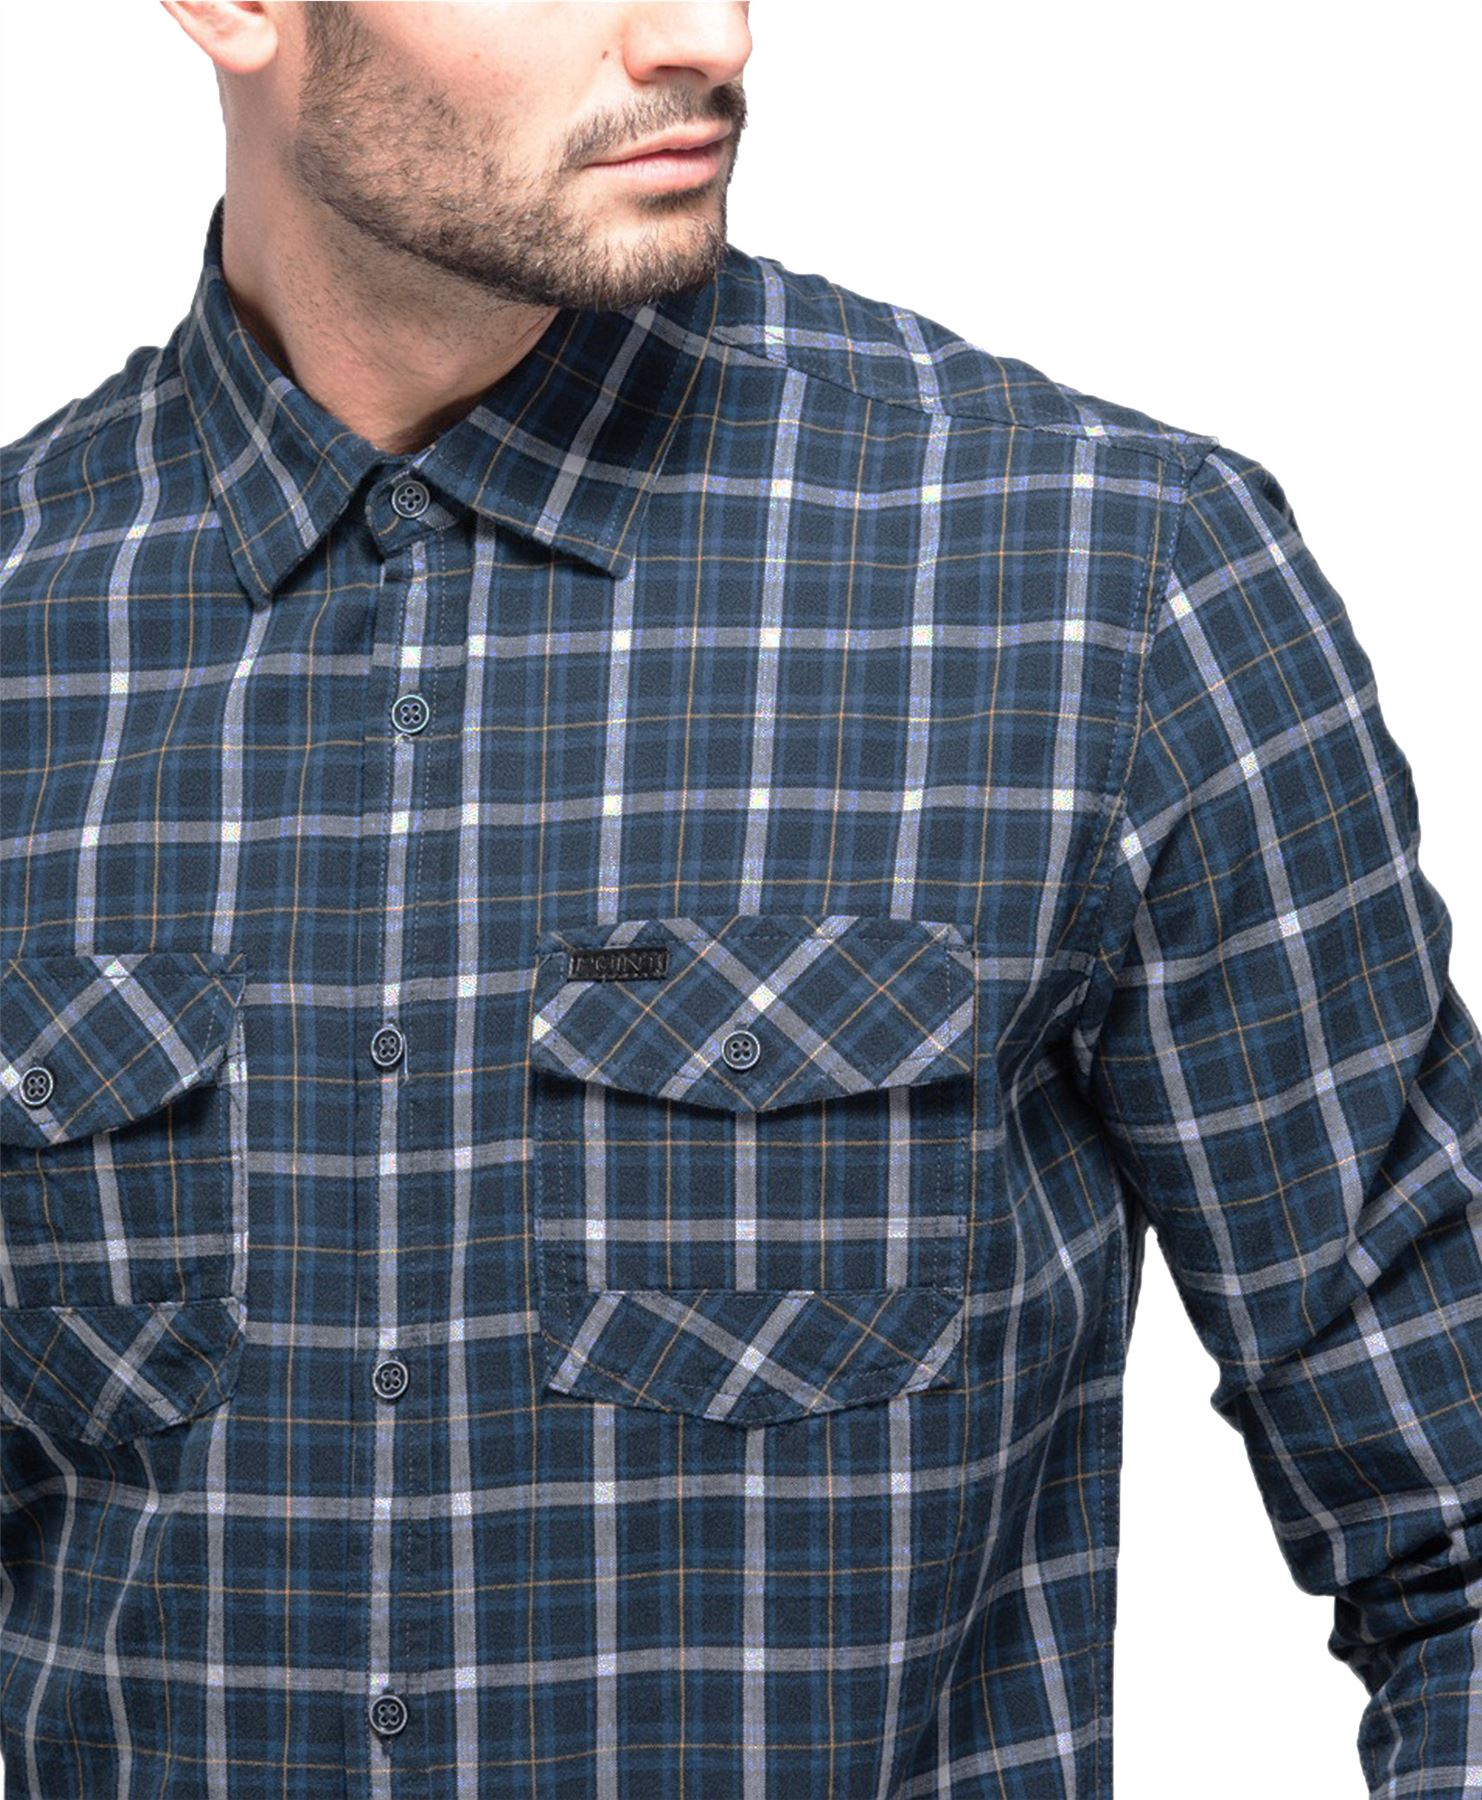 Mens 100/% Cotton Point Zero Checked Shirt Casual Long Sleeve Top Sz S-XL RRP £60